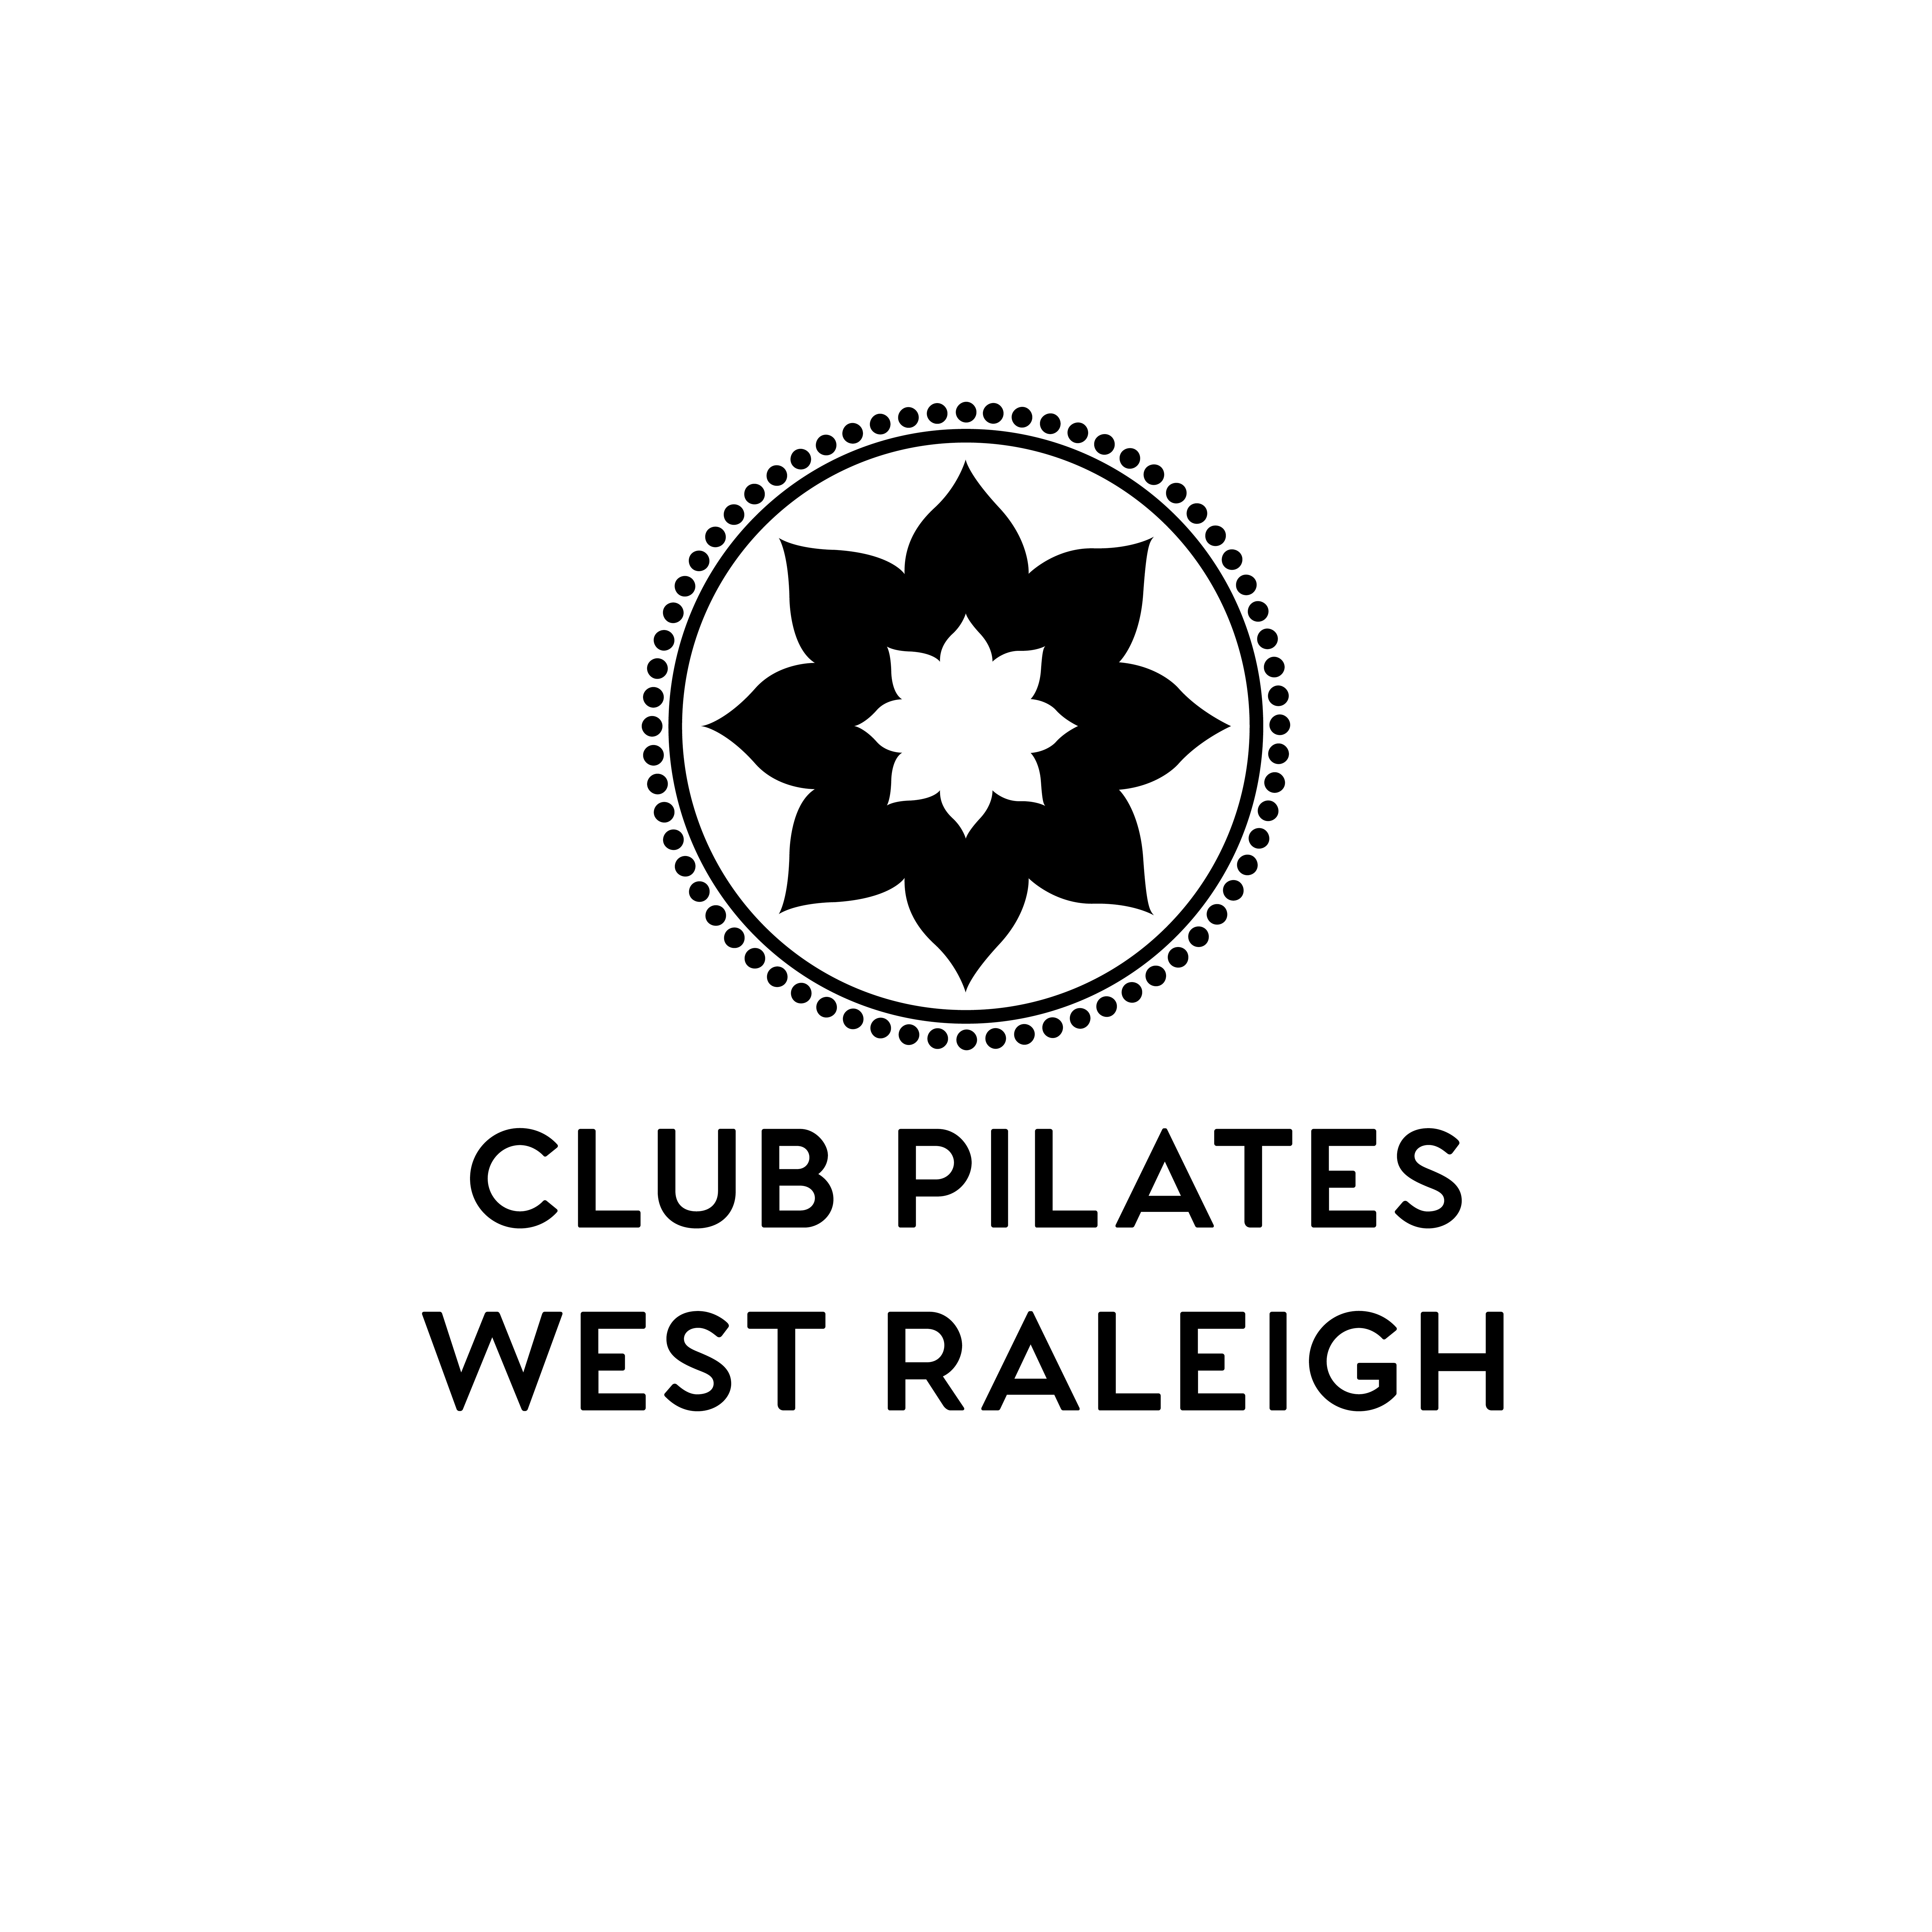 Sponsor Club Pilates West Raleigh